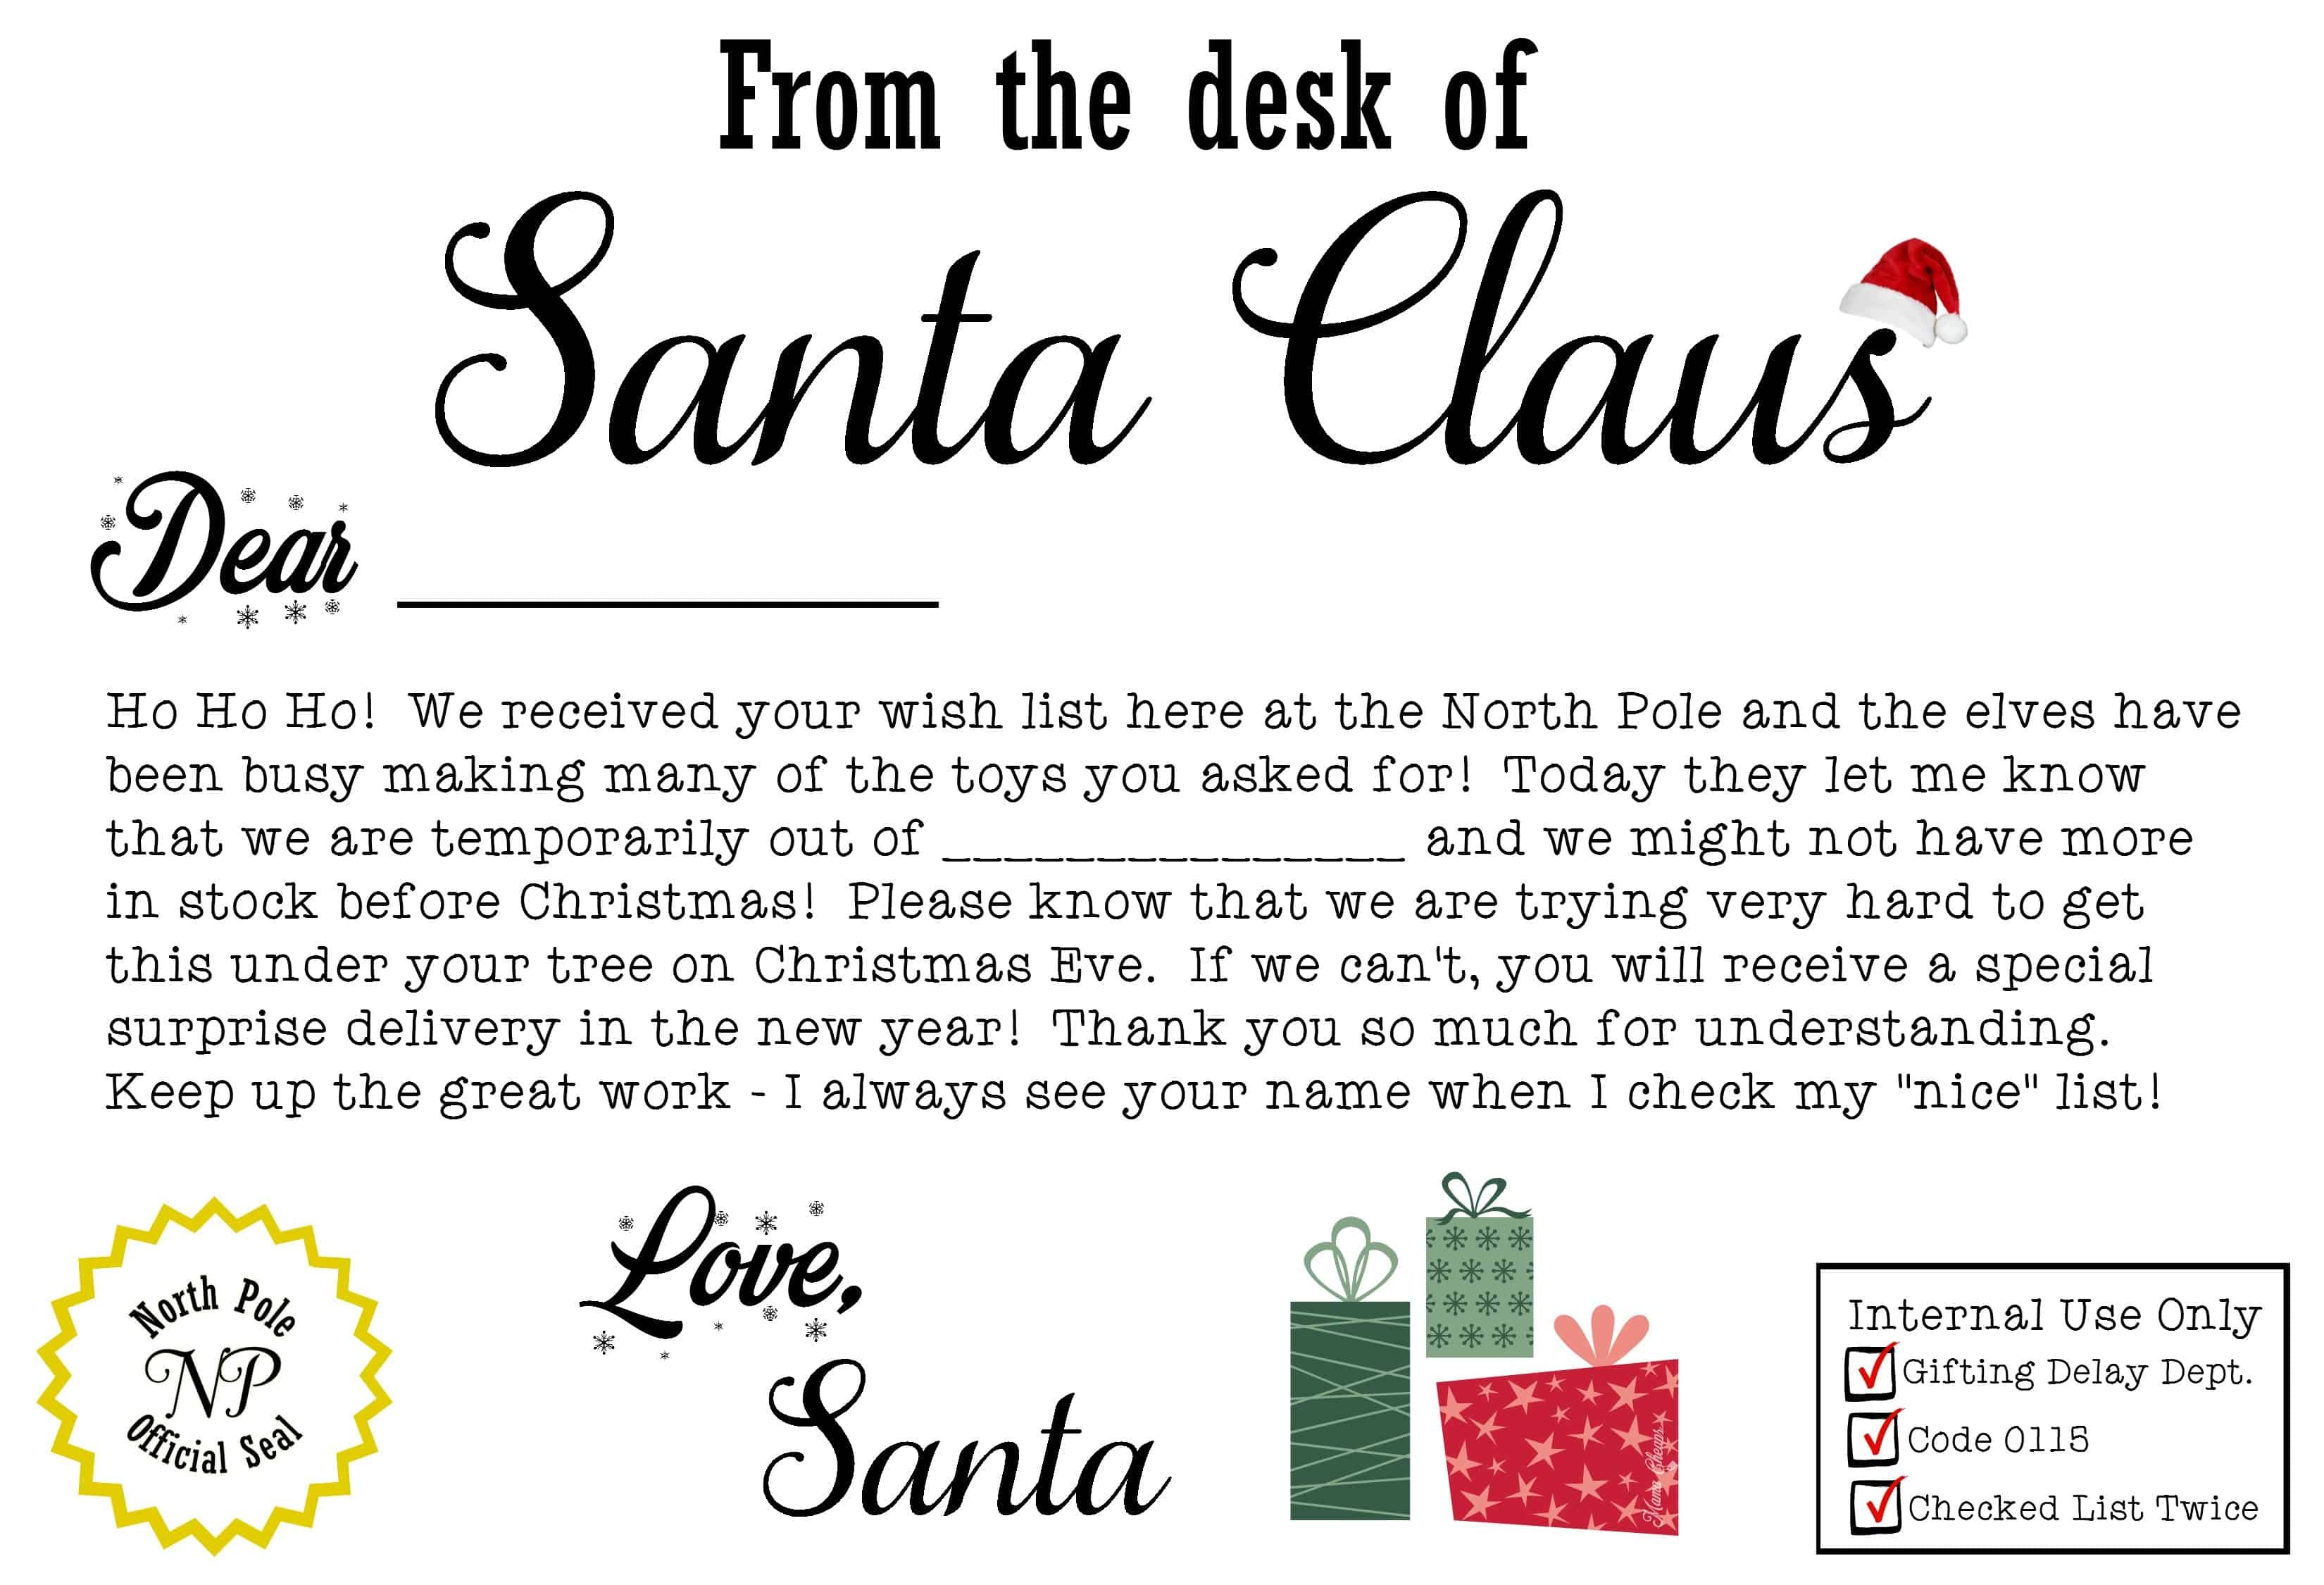 Free santa claus christmas present iou printable letter mama cheaps printable santa iou letter and deliver it before christmas spiritdancerdesigns